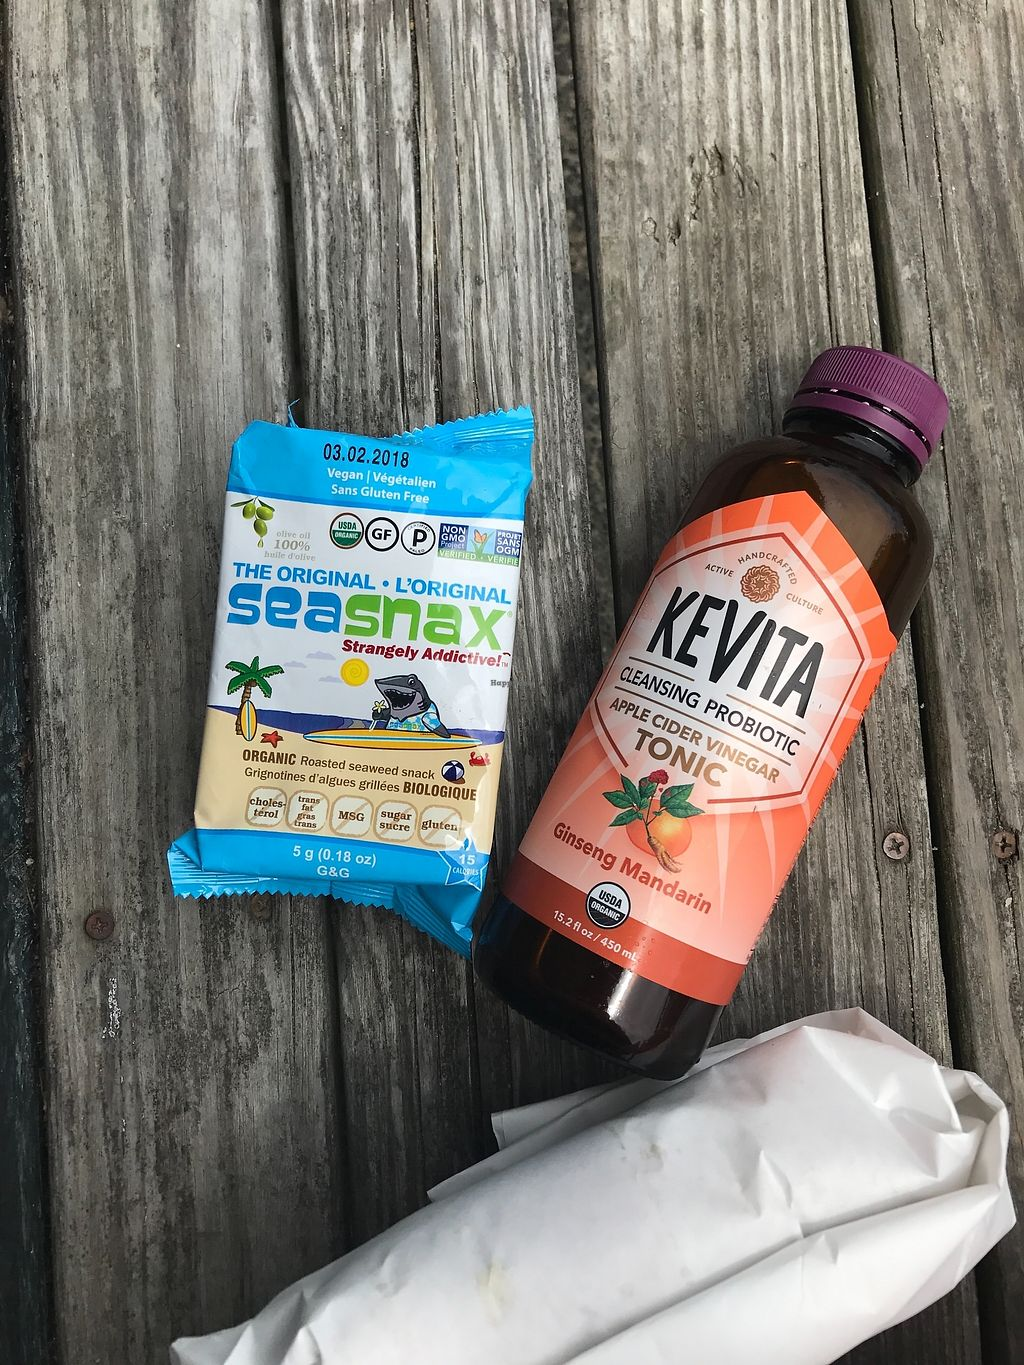 """Photo of Chilmark Store  by <a href=""""/members/profile/megpeters02"""">megpeters02</a> <br/>Up Island Vegan Wrap, Kombucha, & Side <br/> September 30, 2017  - <a href='/contact/abuse/image/102013/310308'>Report</a>"""